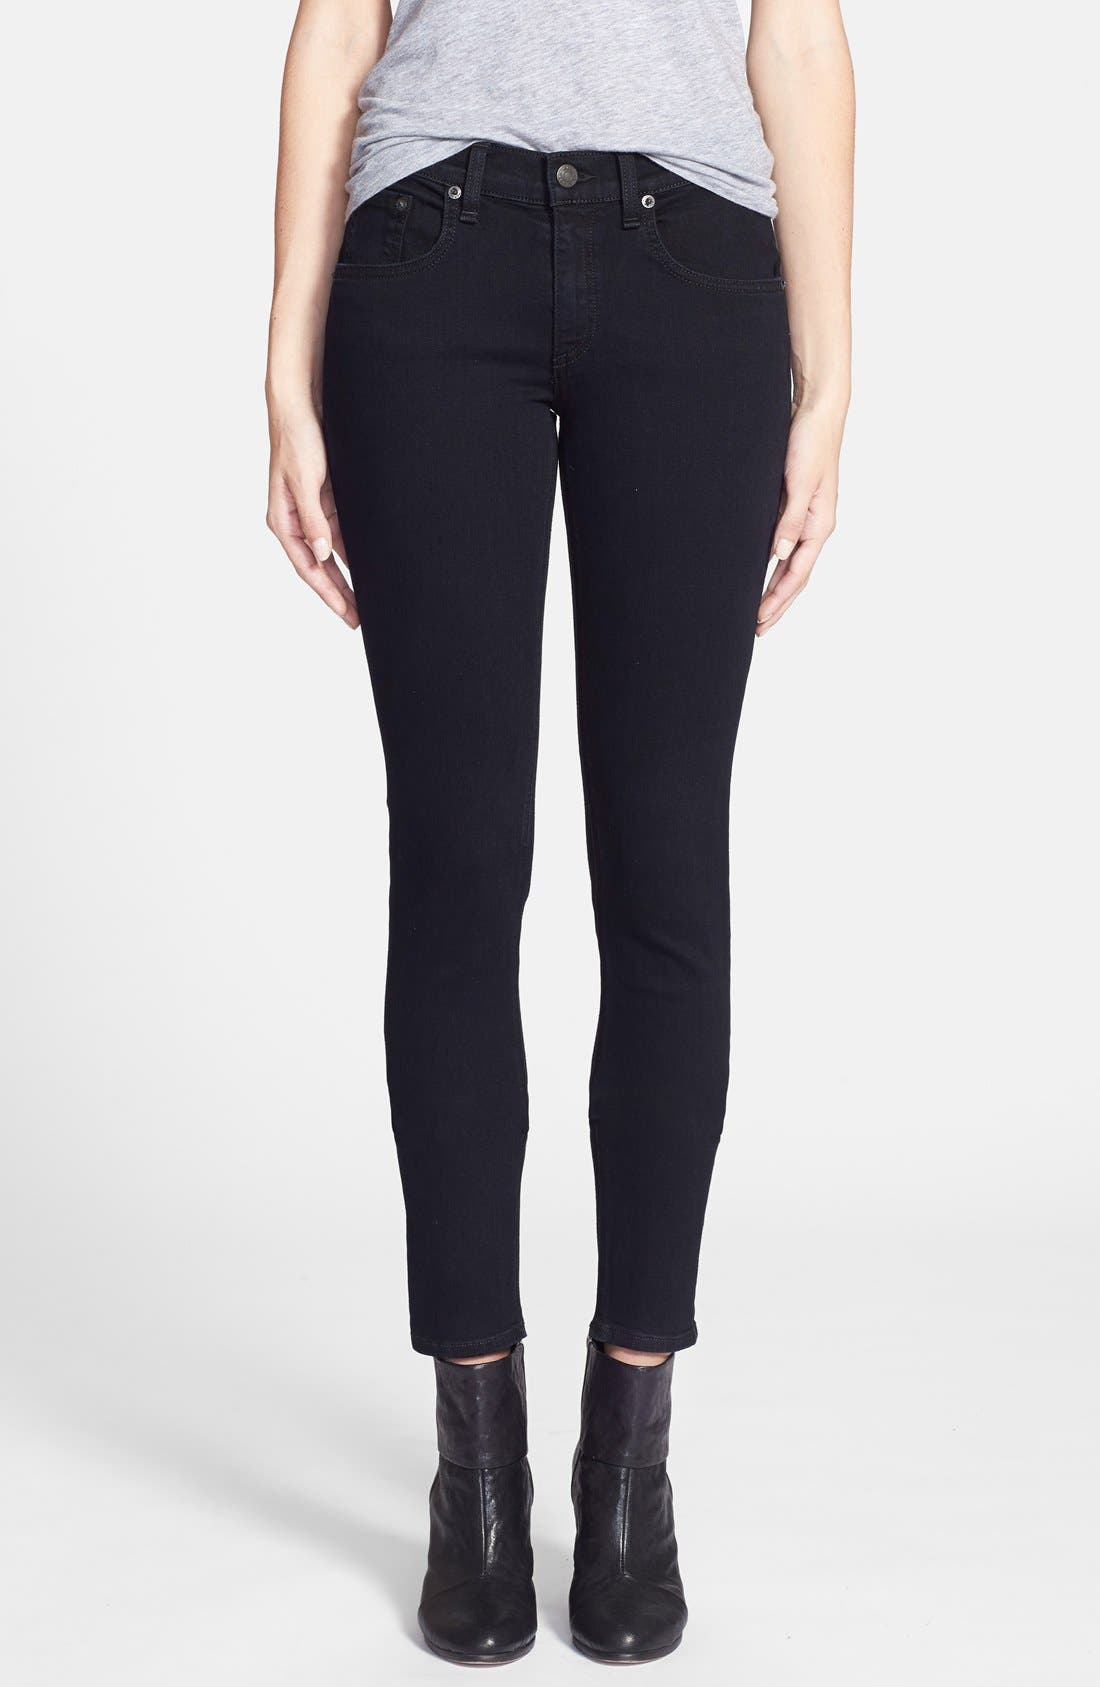 Alternate Image 1 Selected - rag & bone/JEAN 'The Skinny' Stretch Jeans (Coal)